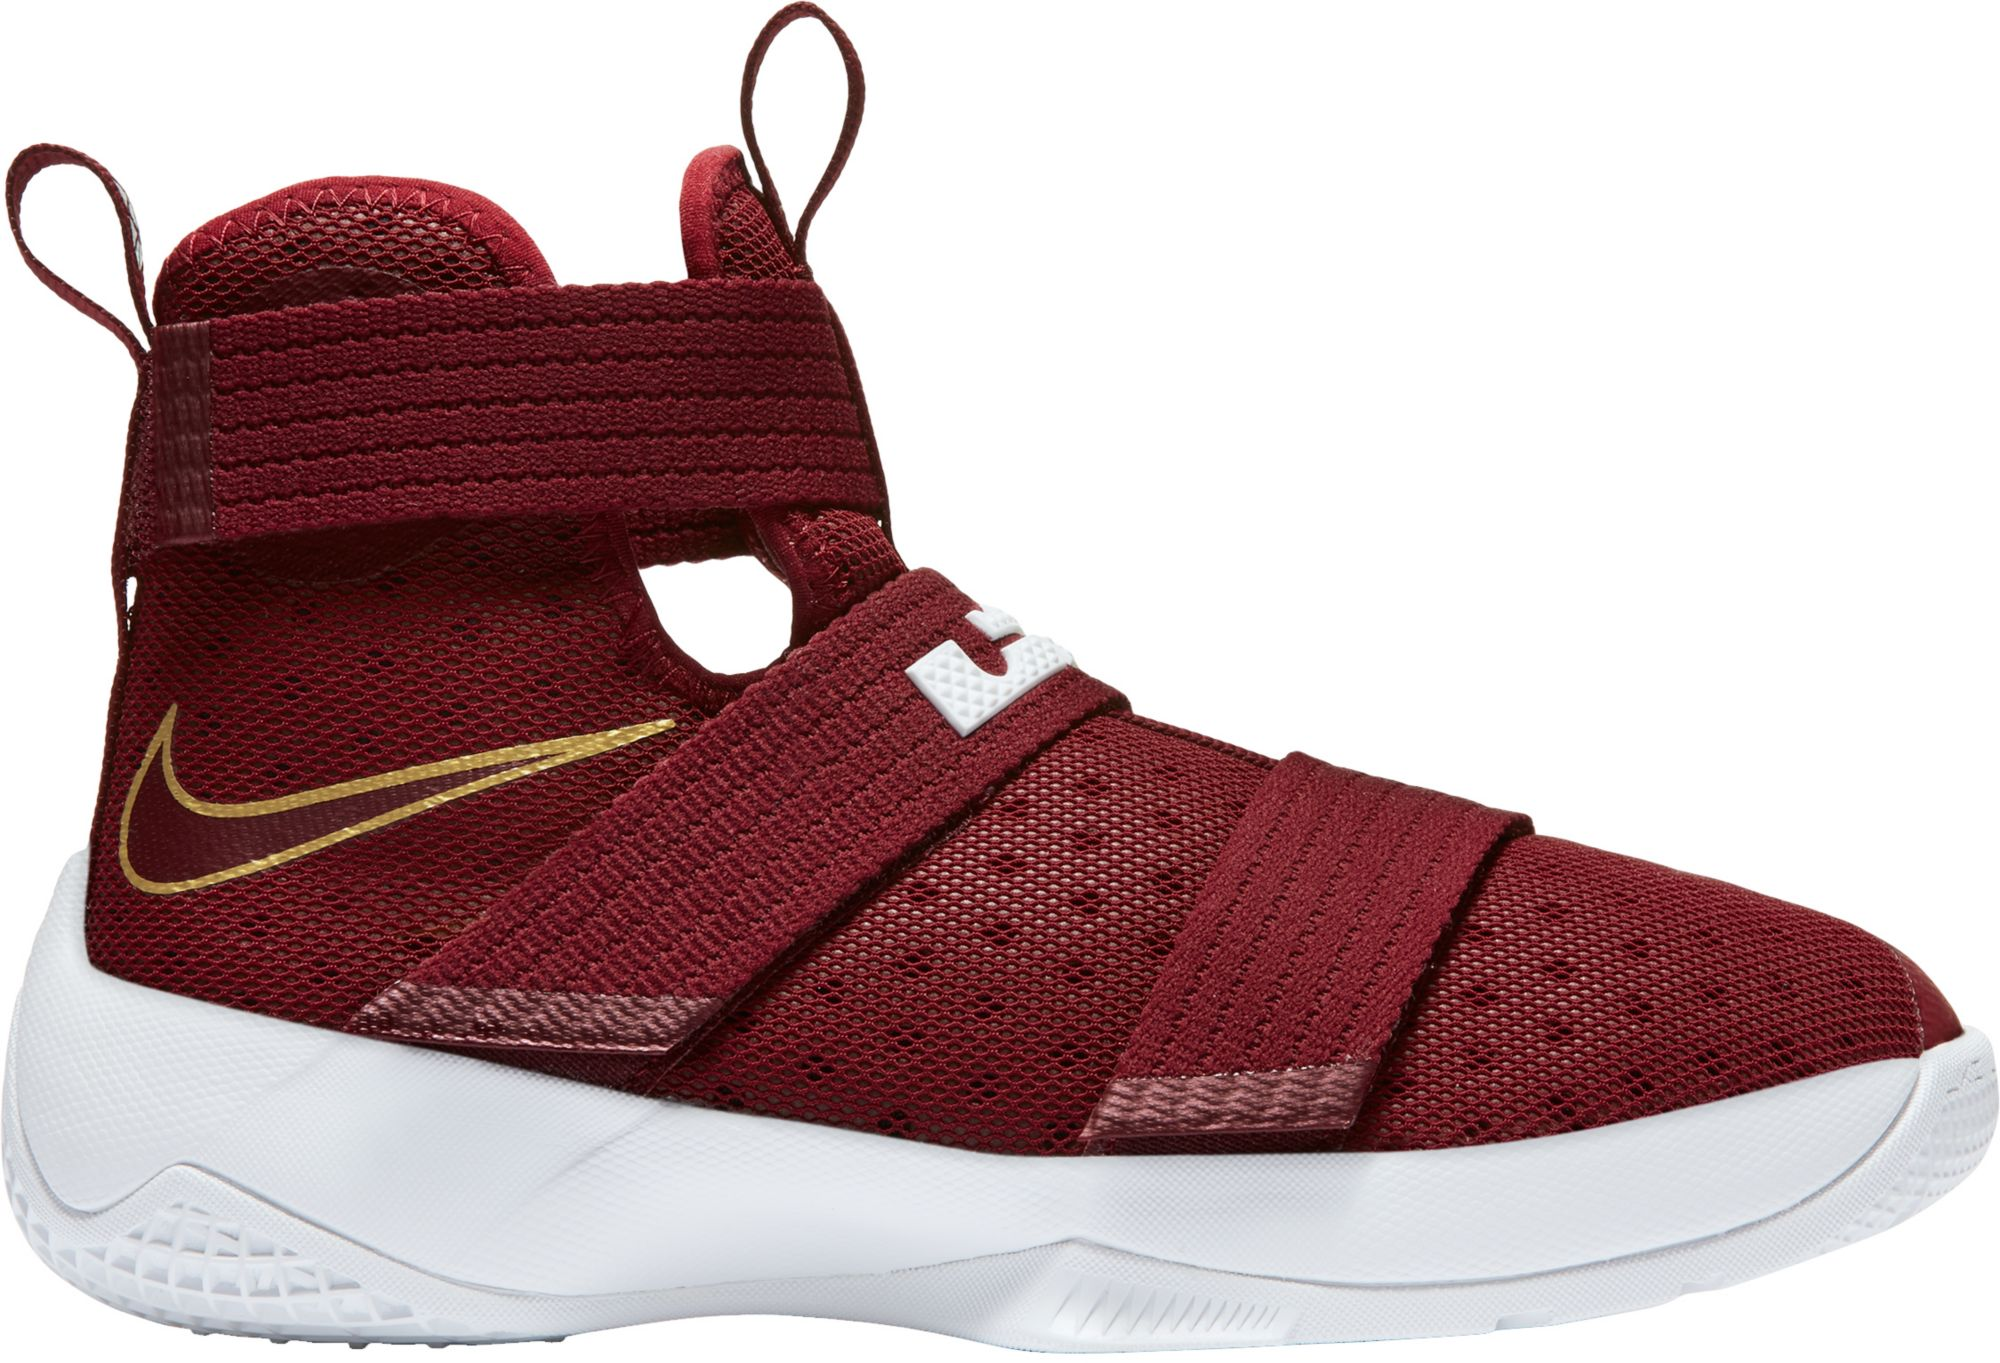 Girls' & Boys' Basketball Shoes | DICK'S Sporting Goods